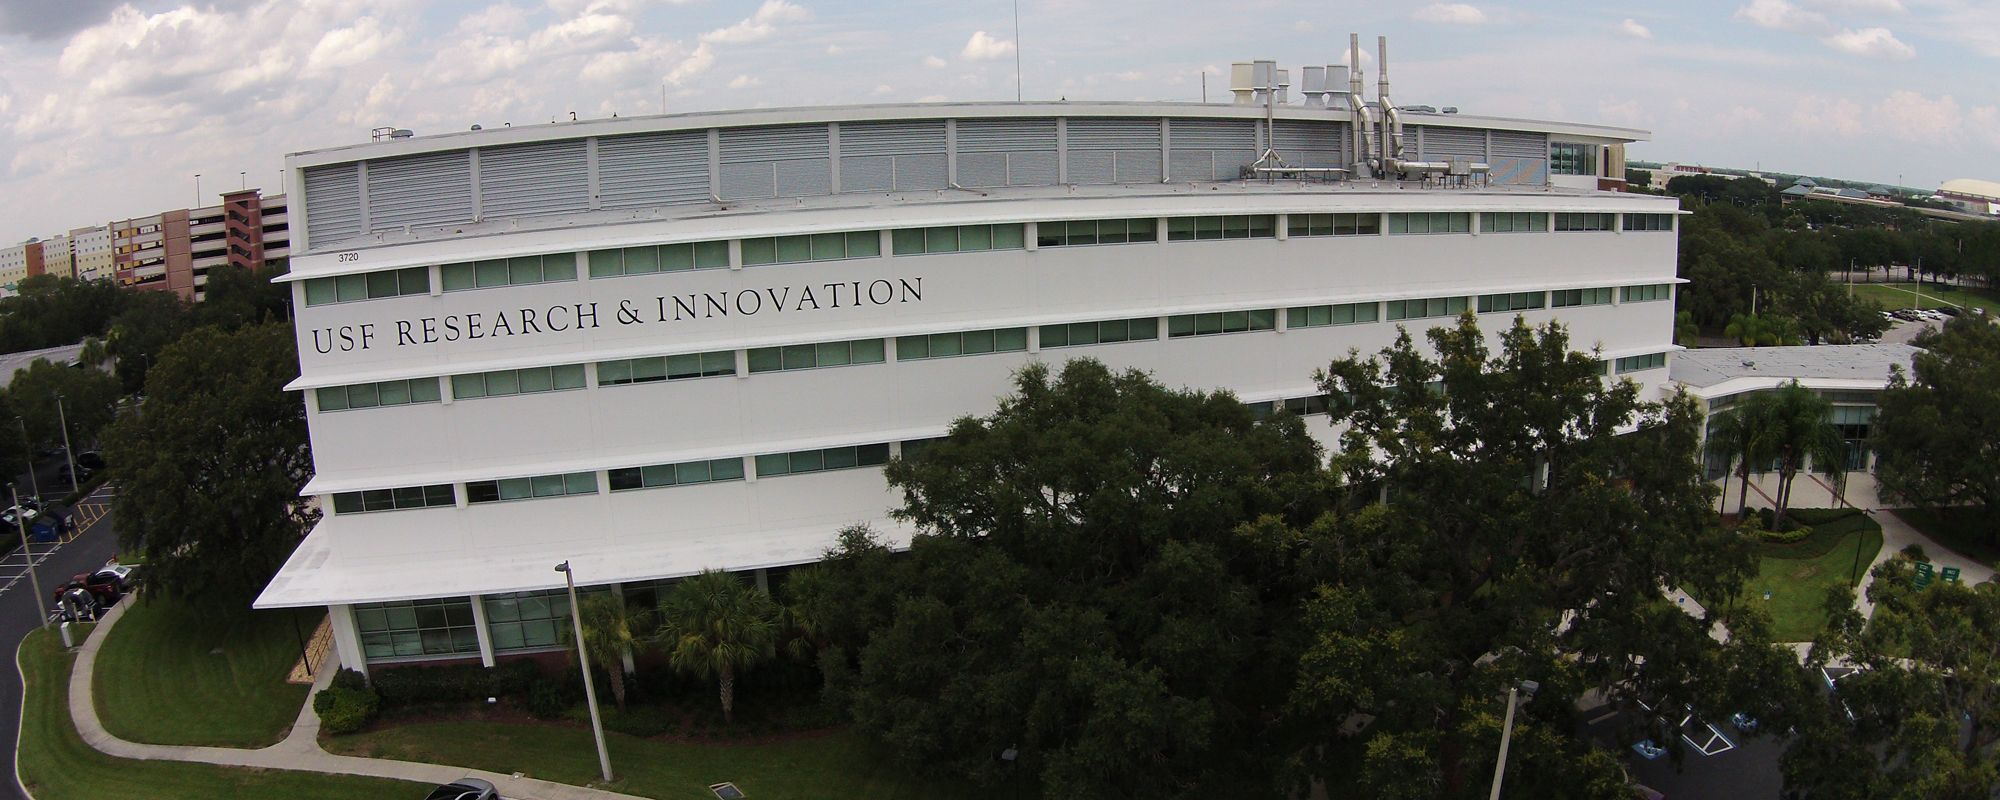 USF Research and Innovation